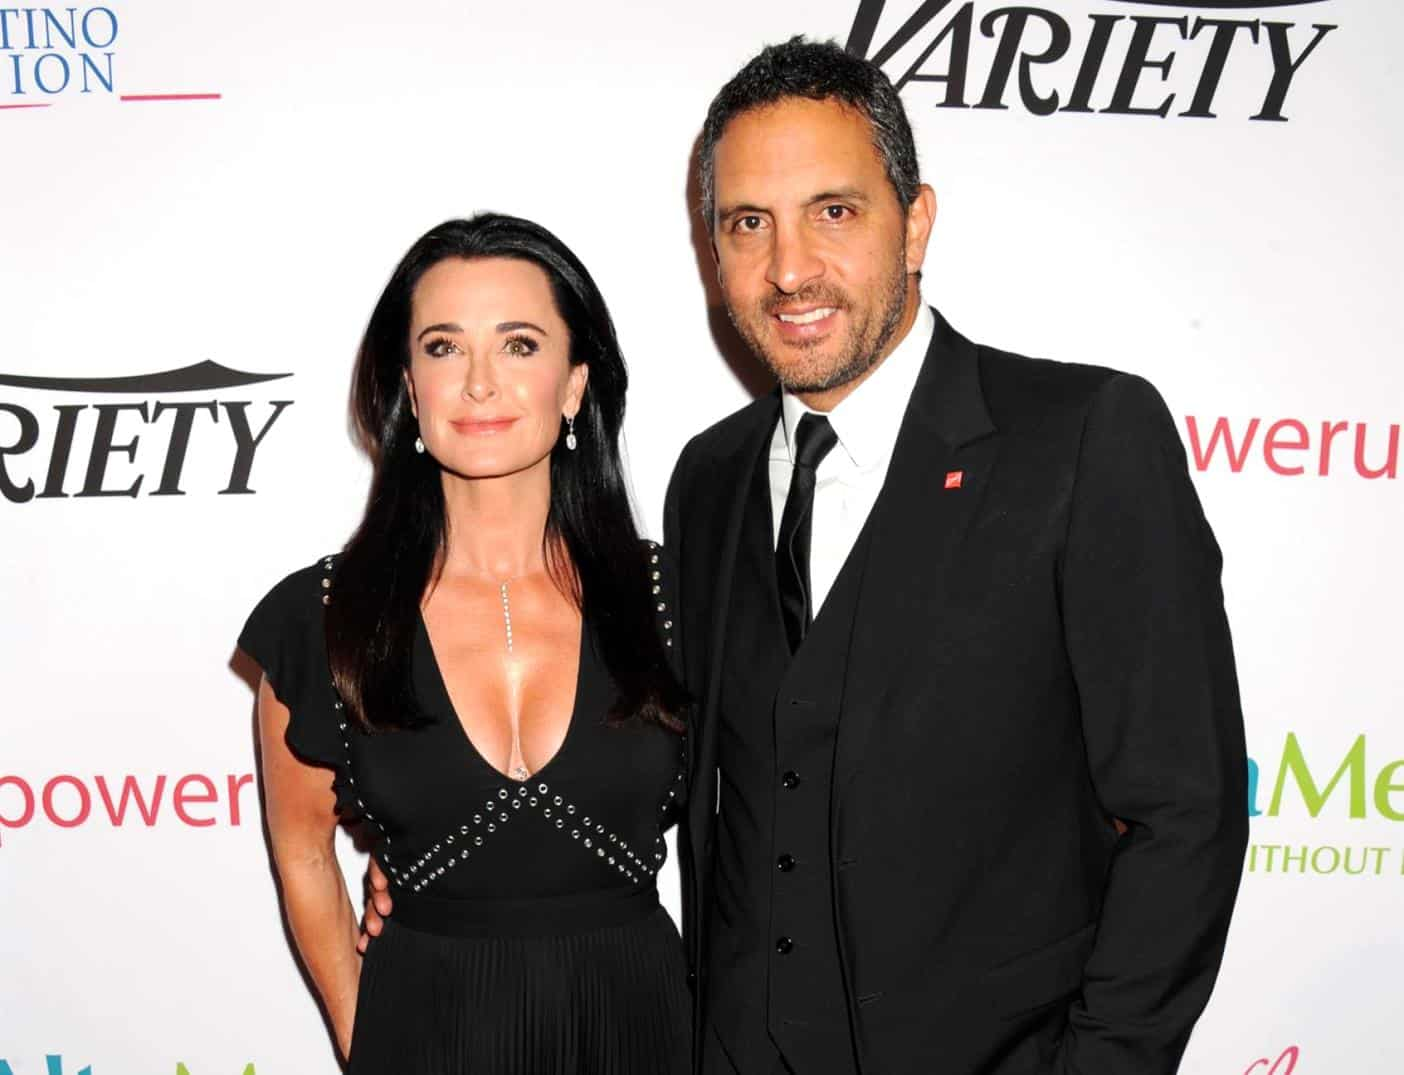 Source Shuts Down Divorce Rumors About Kyle Richards and Mauricio Umansky After Blind Item Claiming a West Coast Housewife is Secretly Separated Led to Speculation About RHOBH Couple